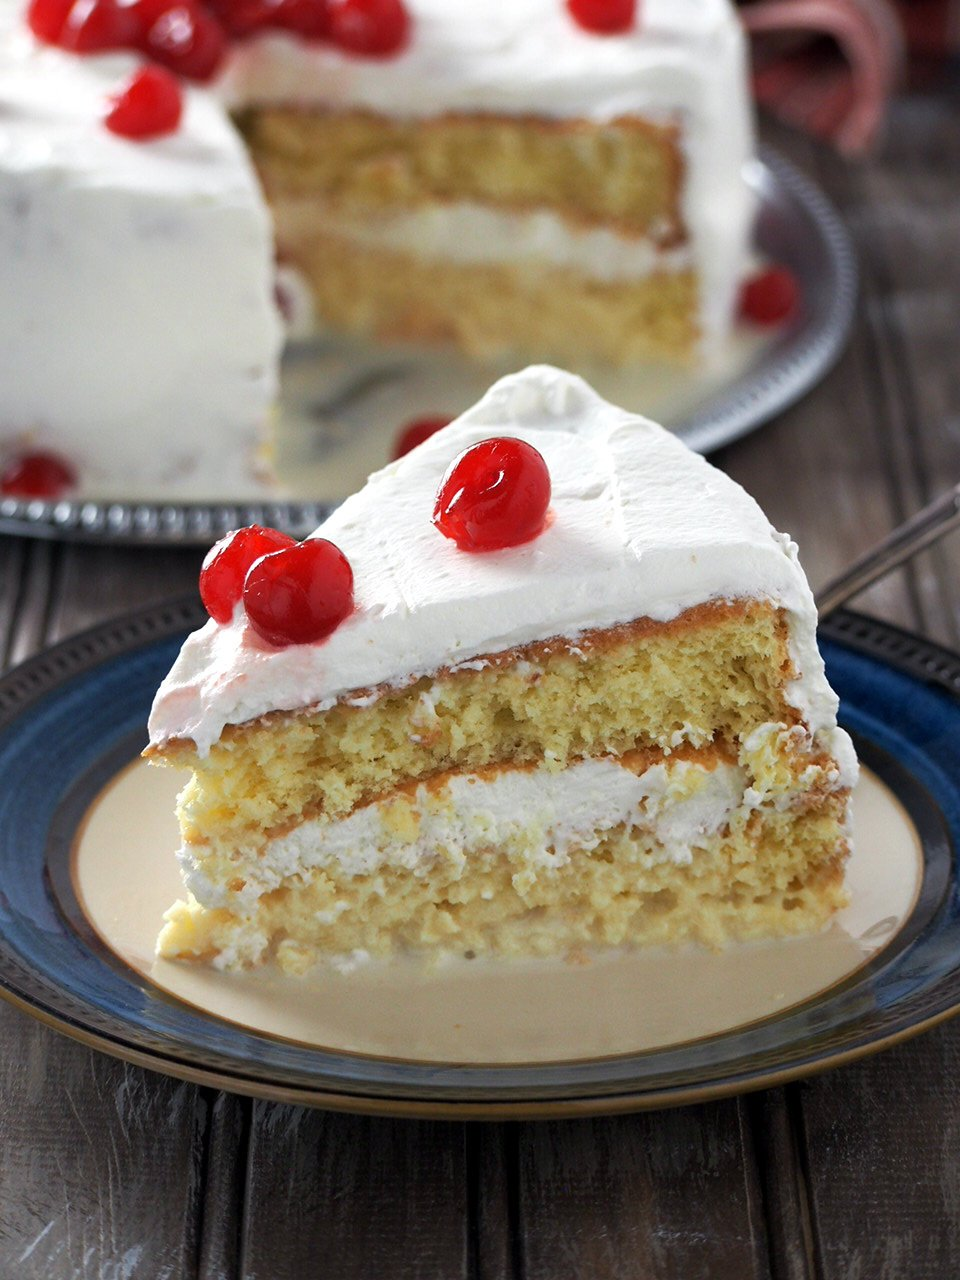 Tres Leches Cake is a heavenly indulgent sponge cake soaked in three types of milk. Very moist, delicate and creamy, this is a perfect dessert after a nice hearty meal.